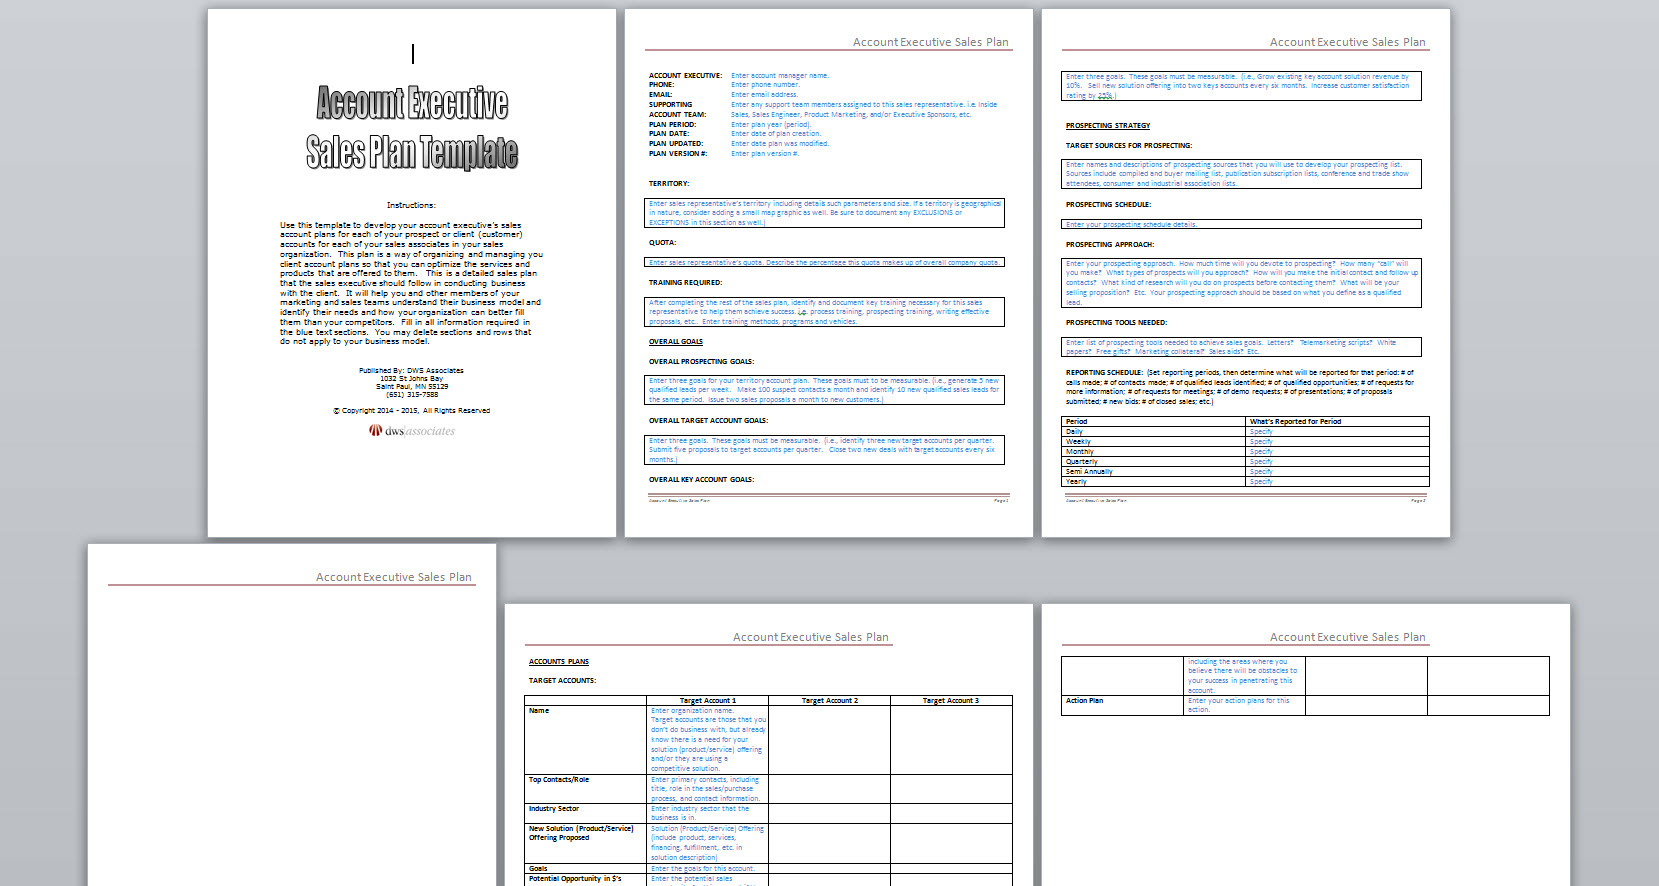 Account executive sales plan template 1081accountexecutivesalesplantemplateg stopboris Images